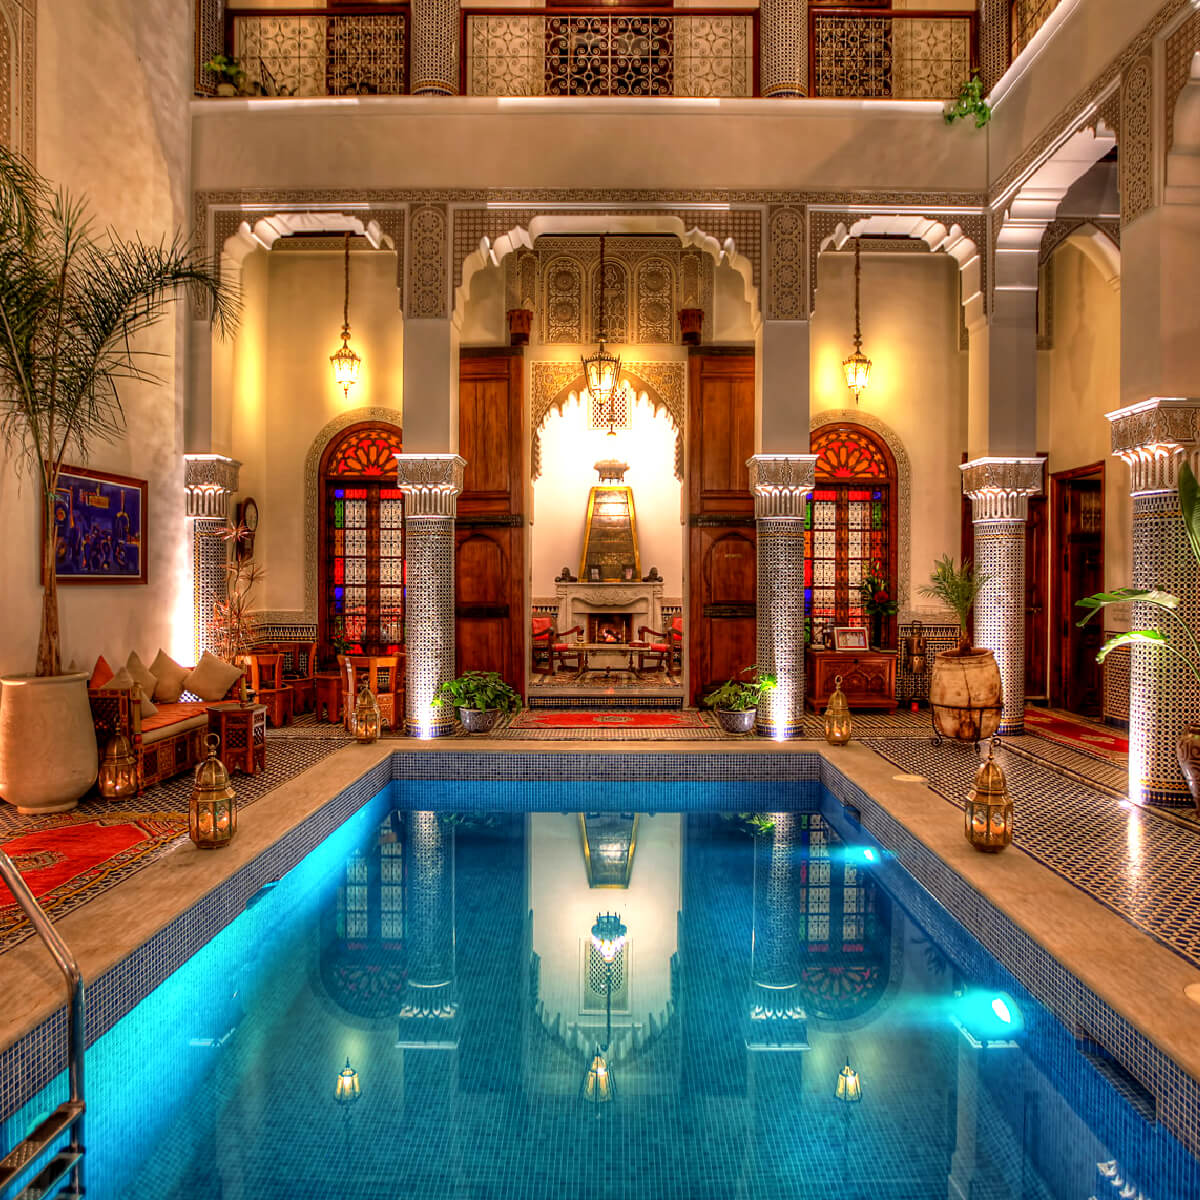 Villa riad bahadi agadir morocco guide for Best riads in marrakesh